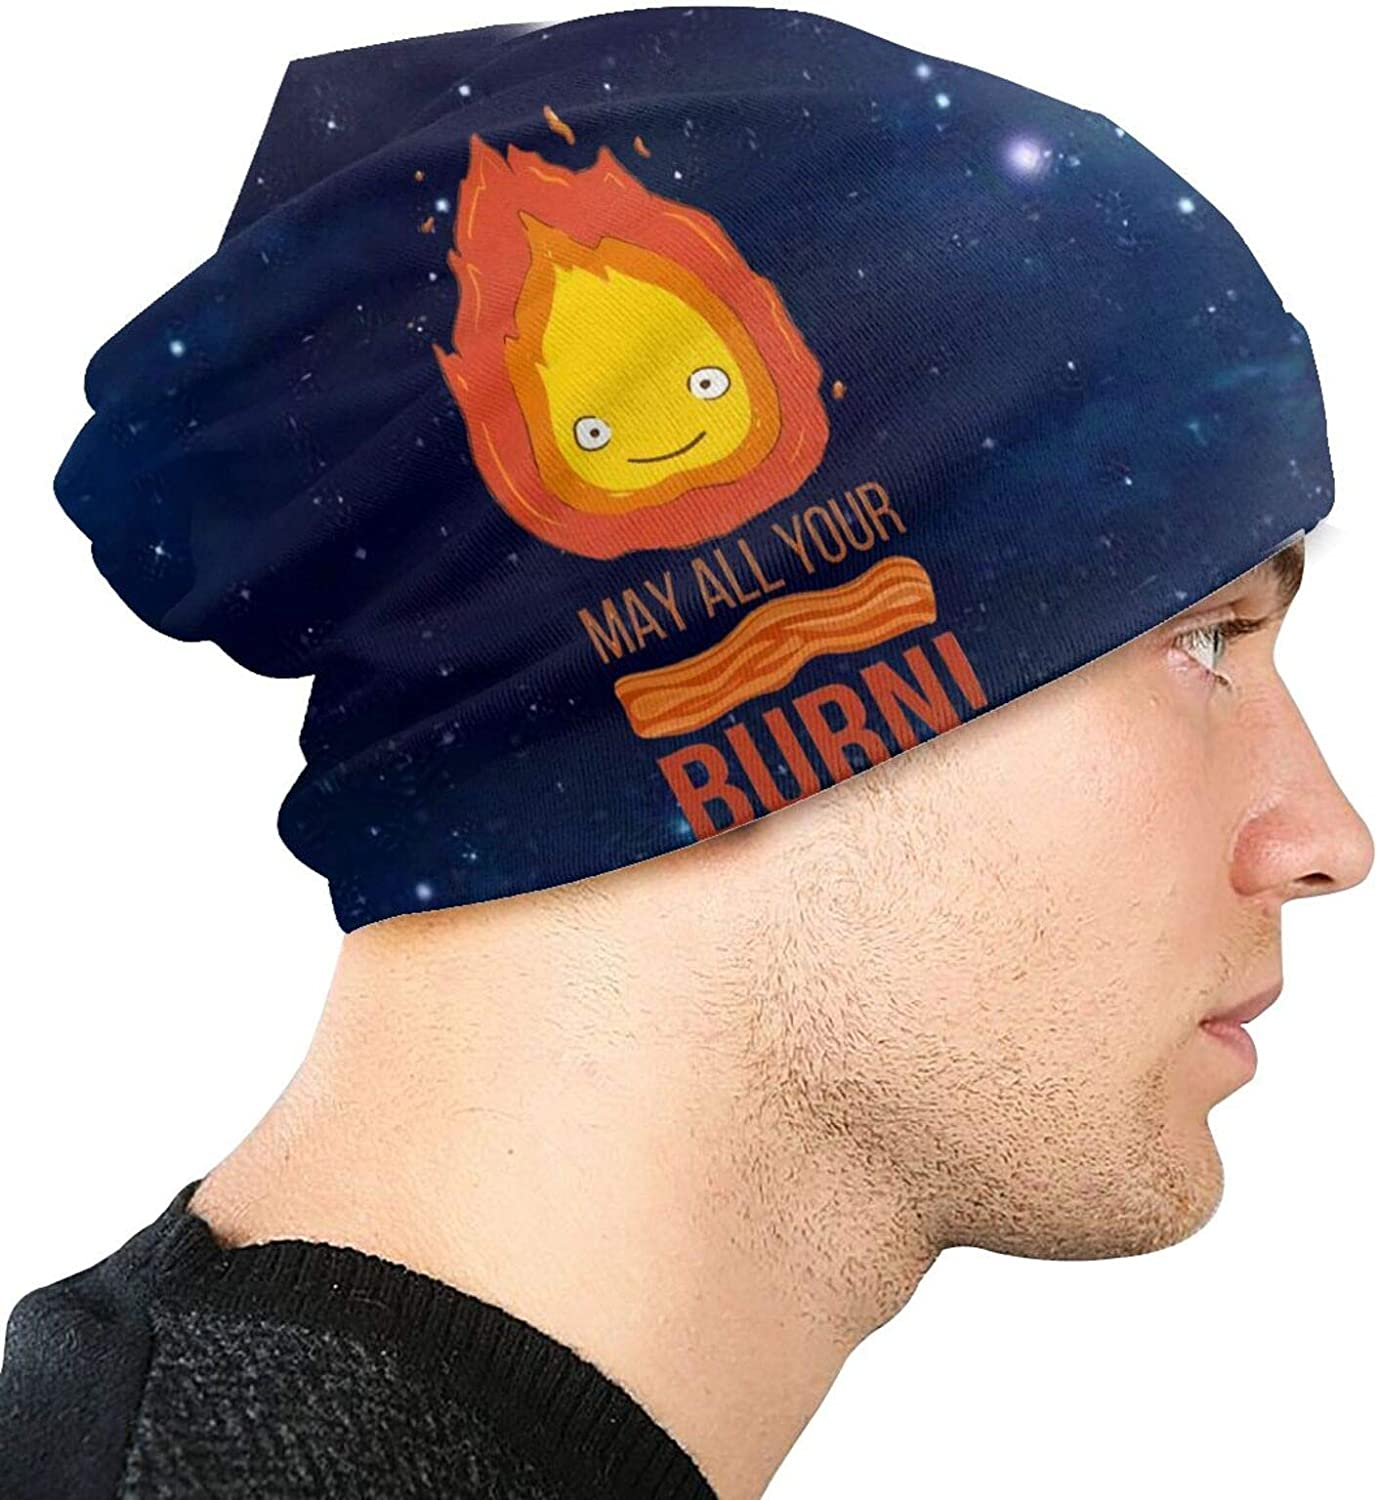 Luomingg Studio Ghibli Calcifer May All Your Bacon Burn Howls Moving Castle Men's Knit Cap Knit Hat Skull Beanie Caps